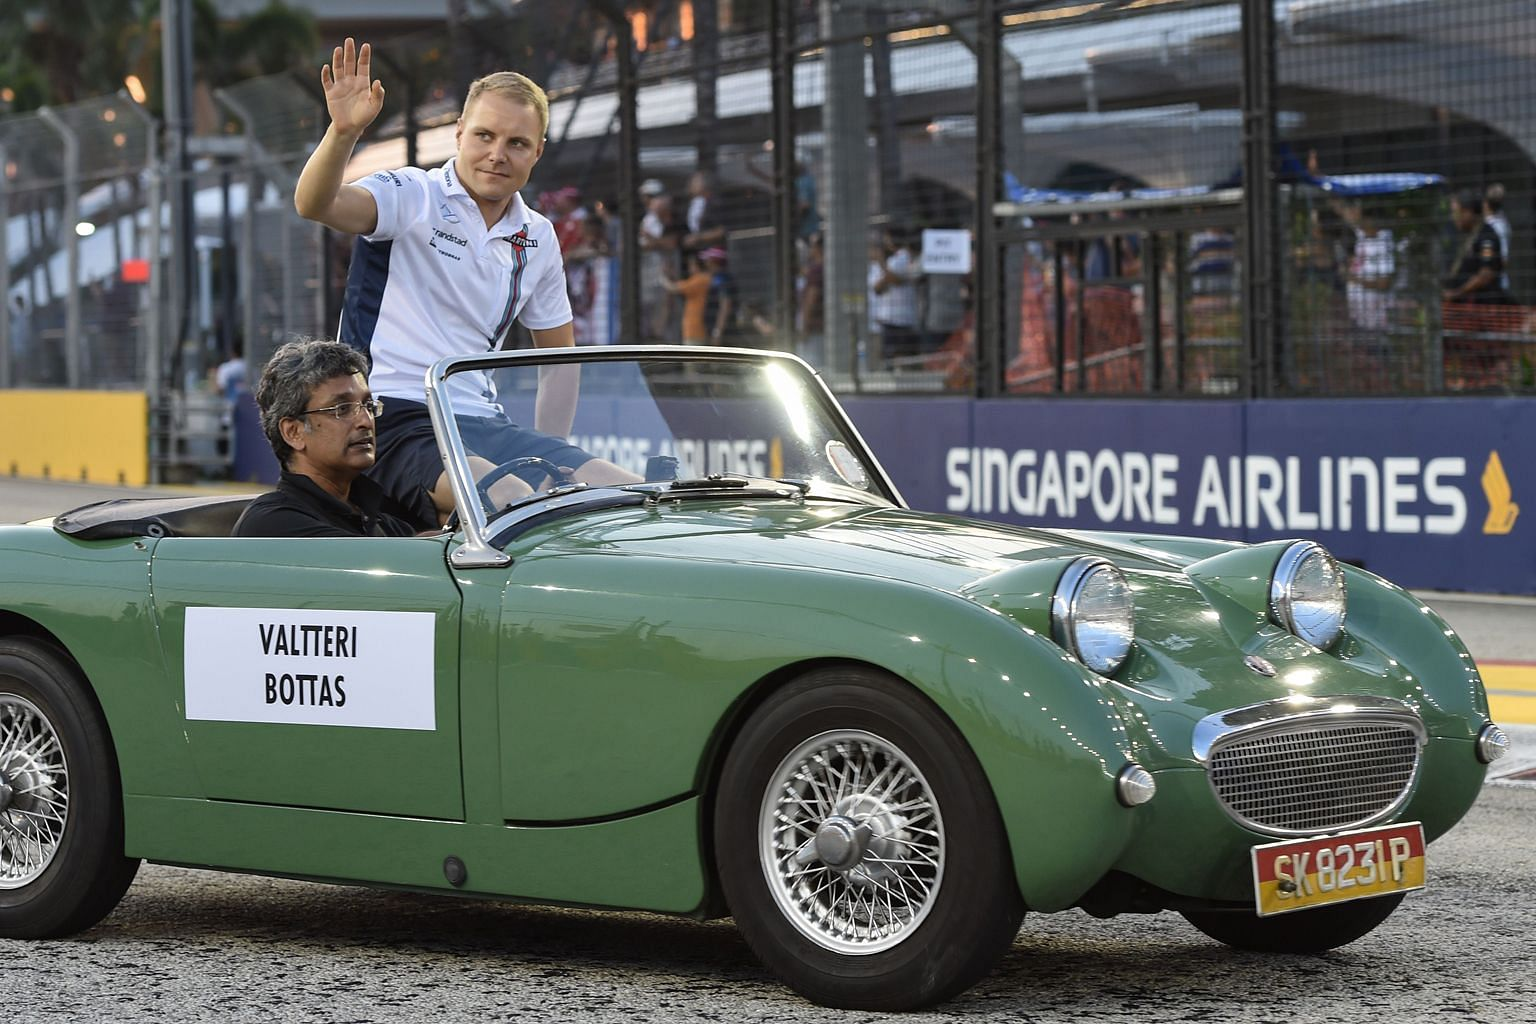 Valtteri Bottas at the drivers' vintage car parade before the Singapore race. He would be an acceptable team-mate for Hamilton.